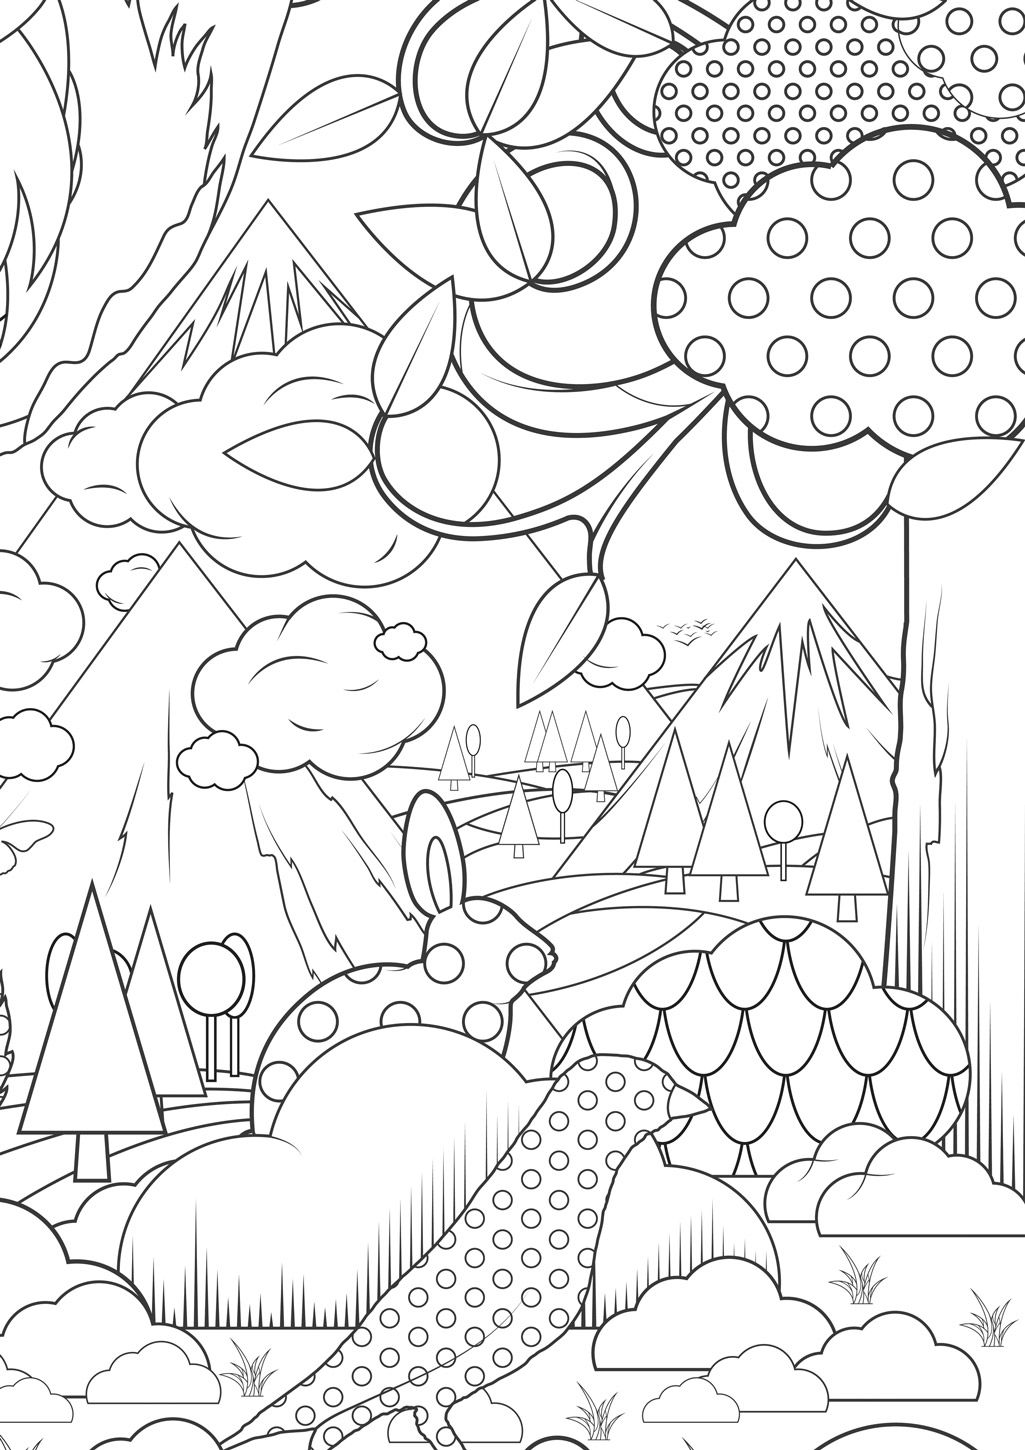 How I Want My Coloring Book To Be Ausmalen Bilder Zum Ausmalen Ausmalbilder